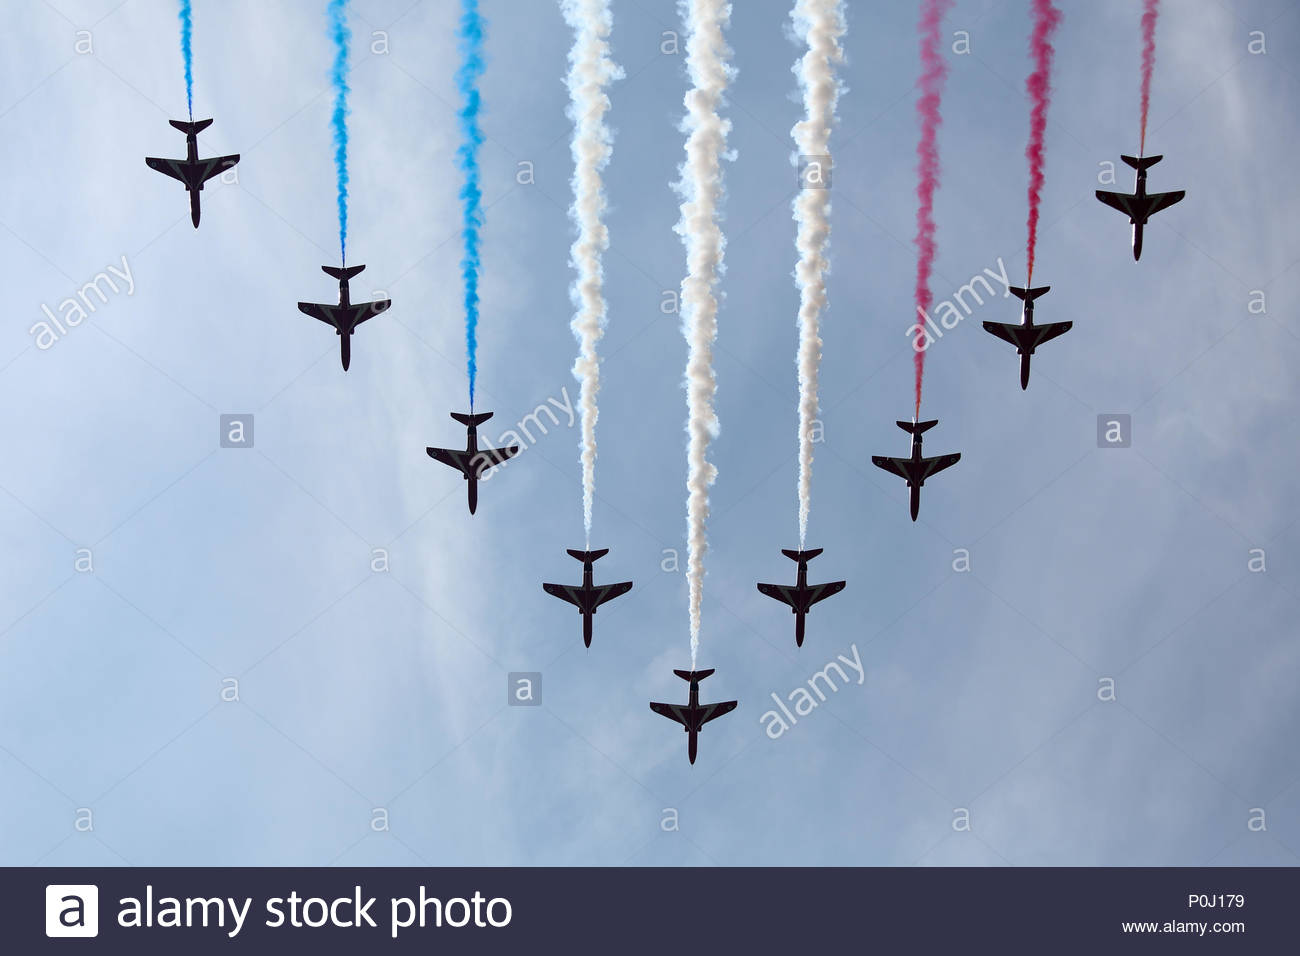 London, UK. 9th June, 2018. Red Arrows of the Royal Air Force flypast after the 2018 Trooping the Colour / Queen's Birthday Parade. Credit: Katie Chan/Alamy Live News Stock Photo